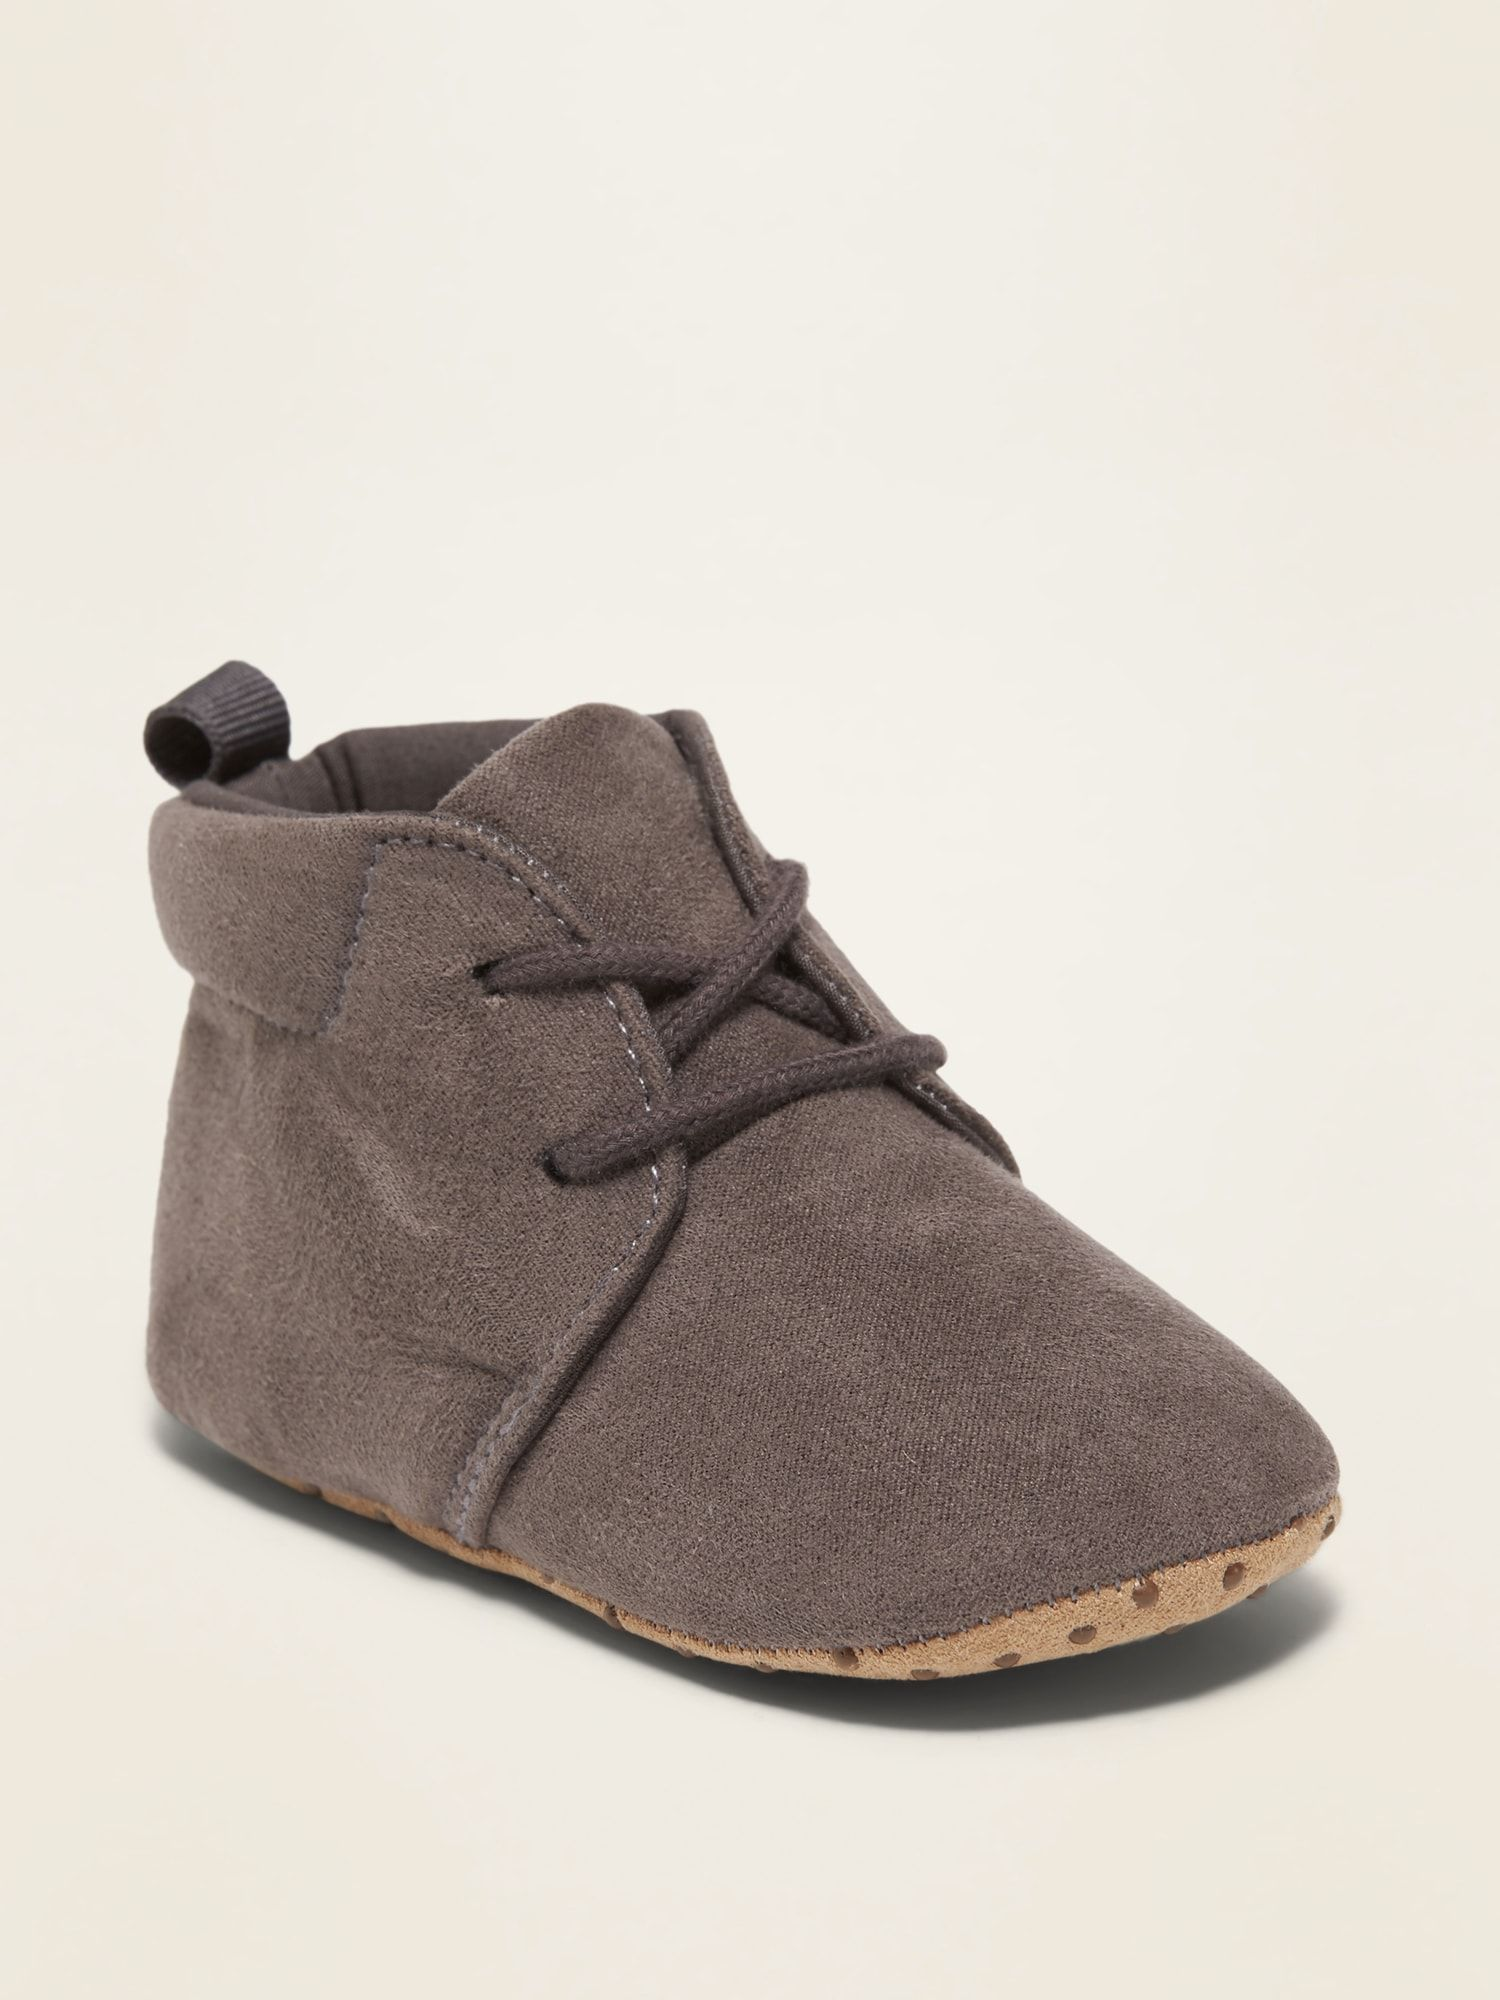 Faux Suede Desert Boots For Baby In 2020 Baby Boy Boots Old Navy Baby Boy Toddler Boy Shoes